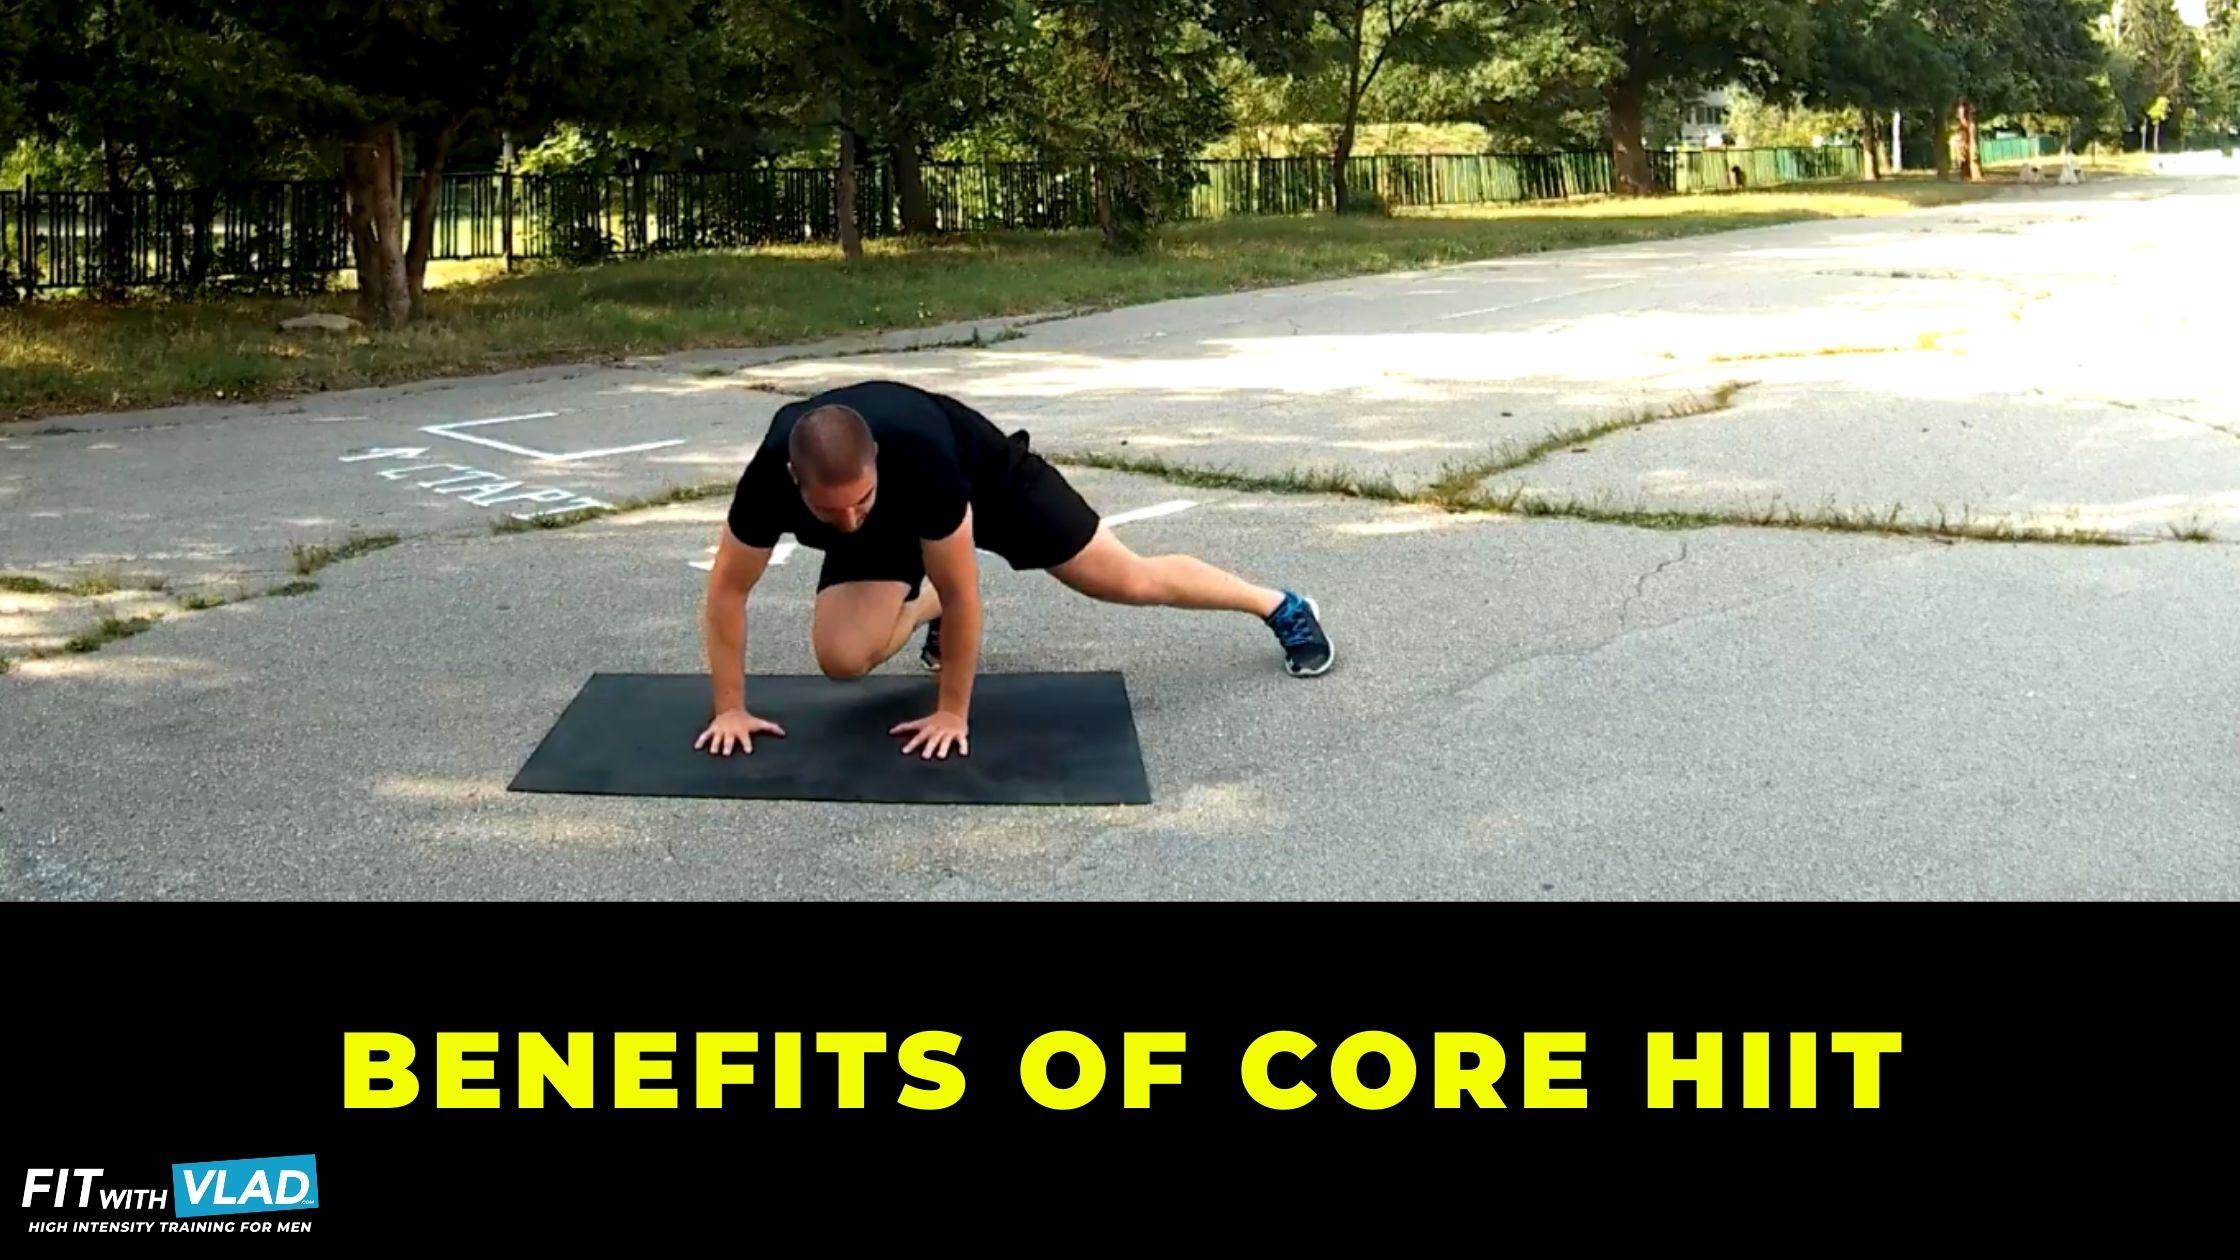 What are the benefits of HIIT core training for the fitness beginner